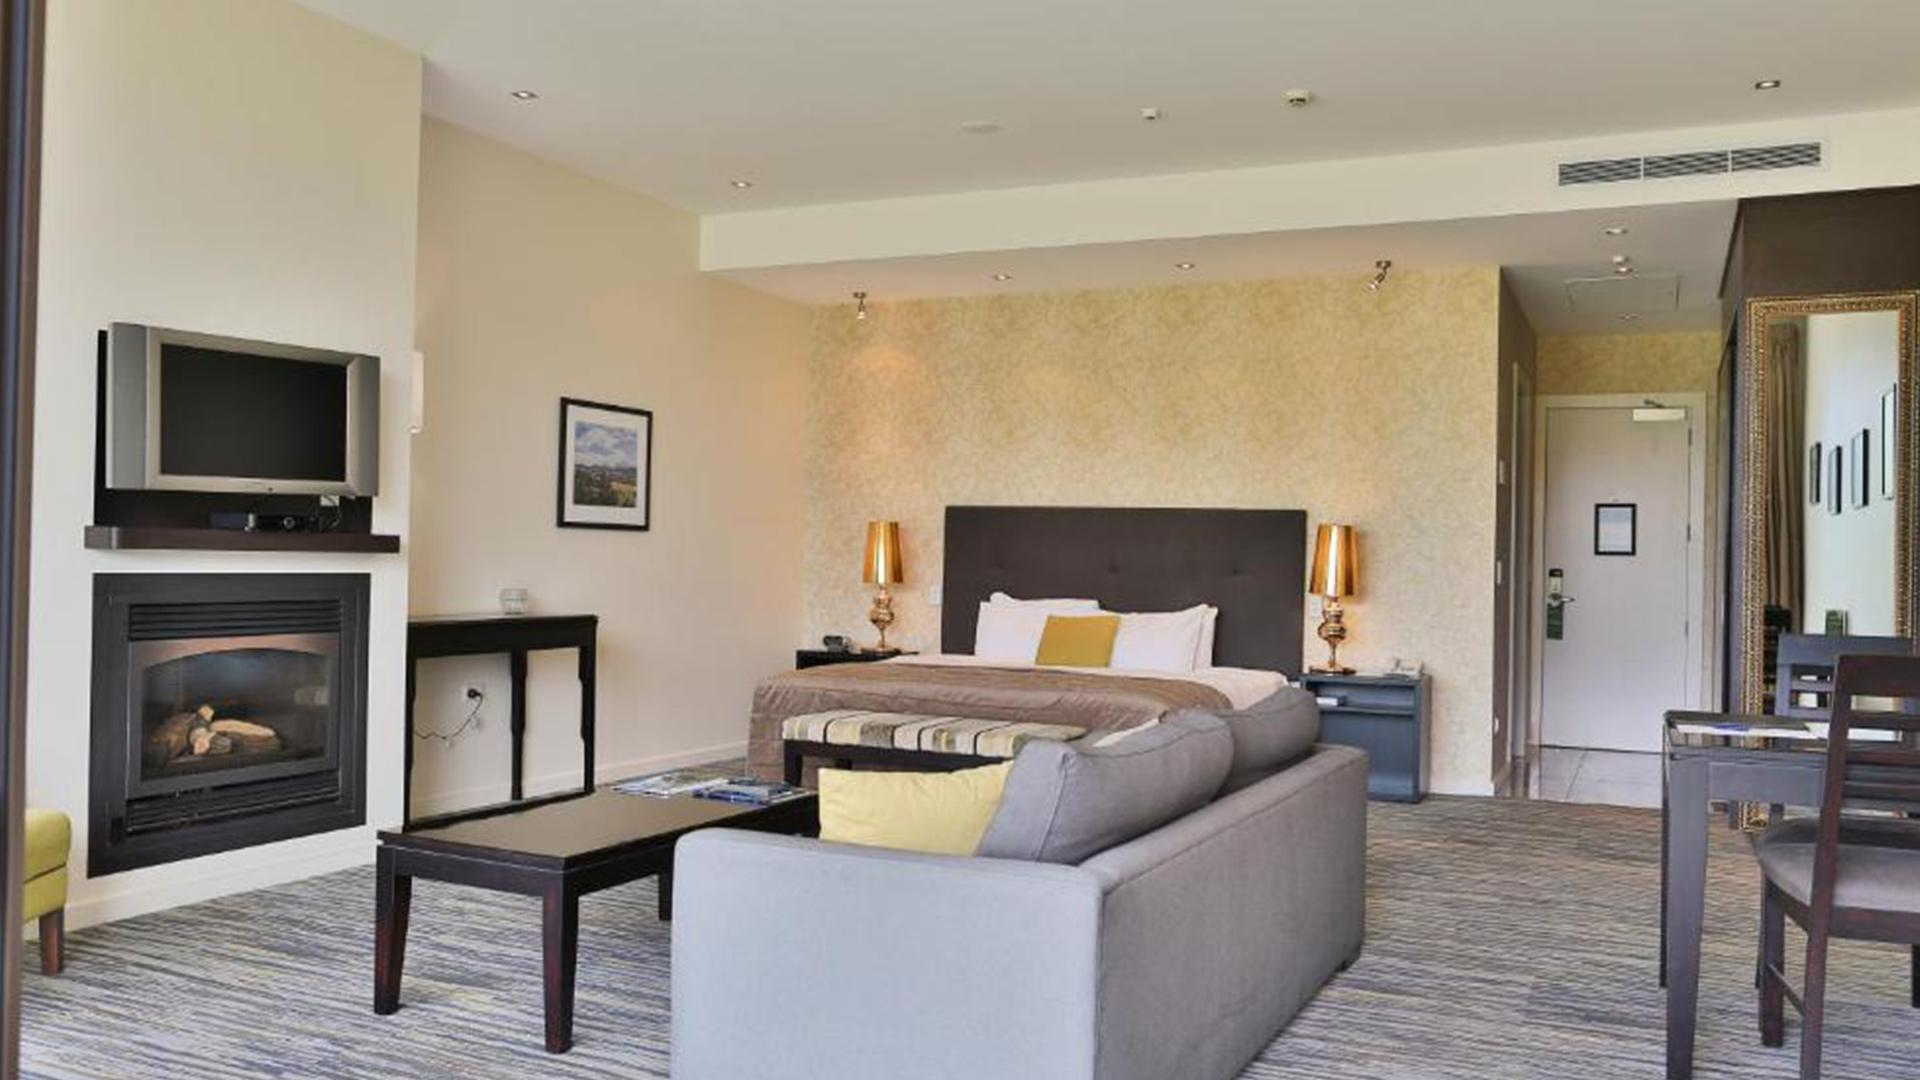 Superior Spa Suite image 1 at Braemar Lodge & Spa by null, Canterbury, New Zealand